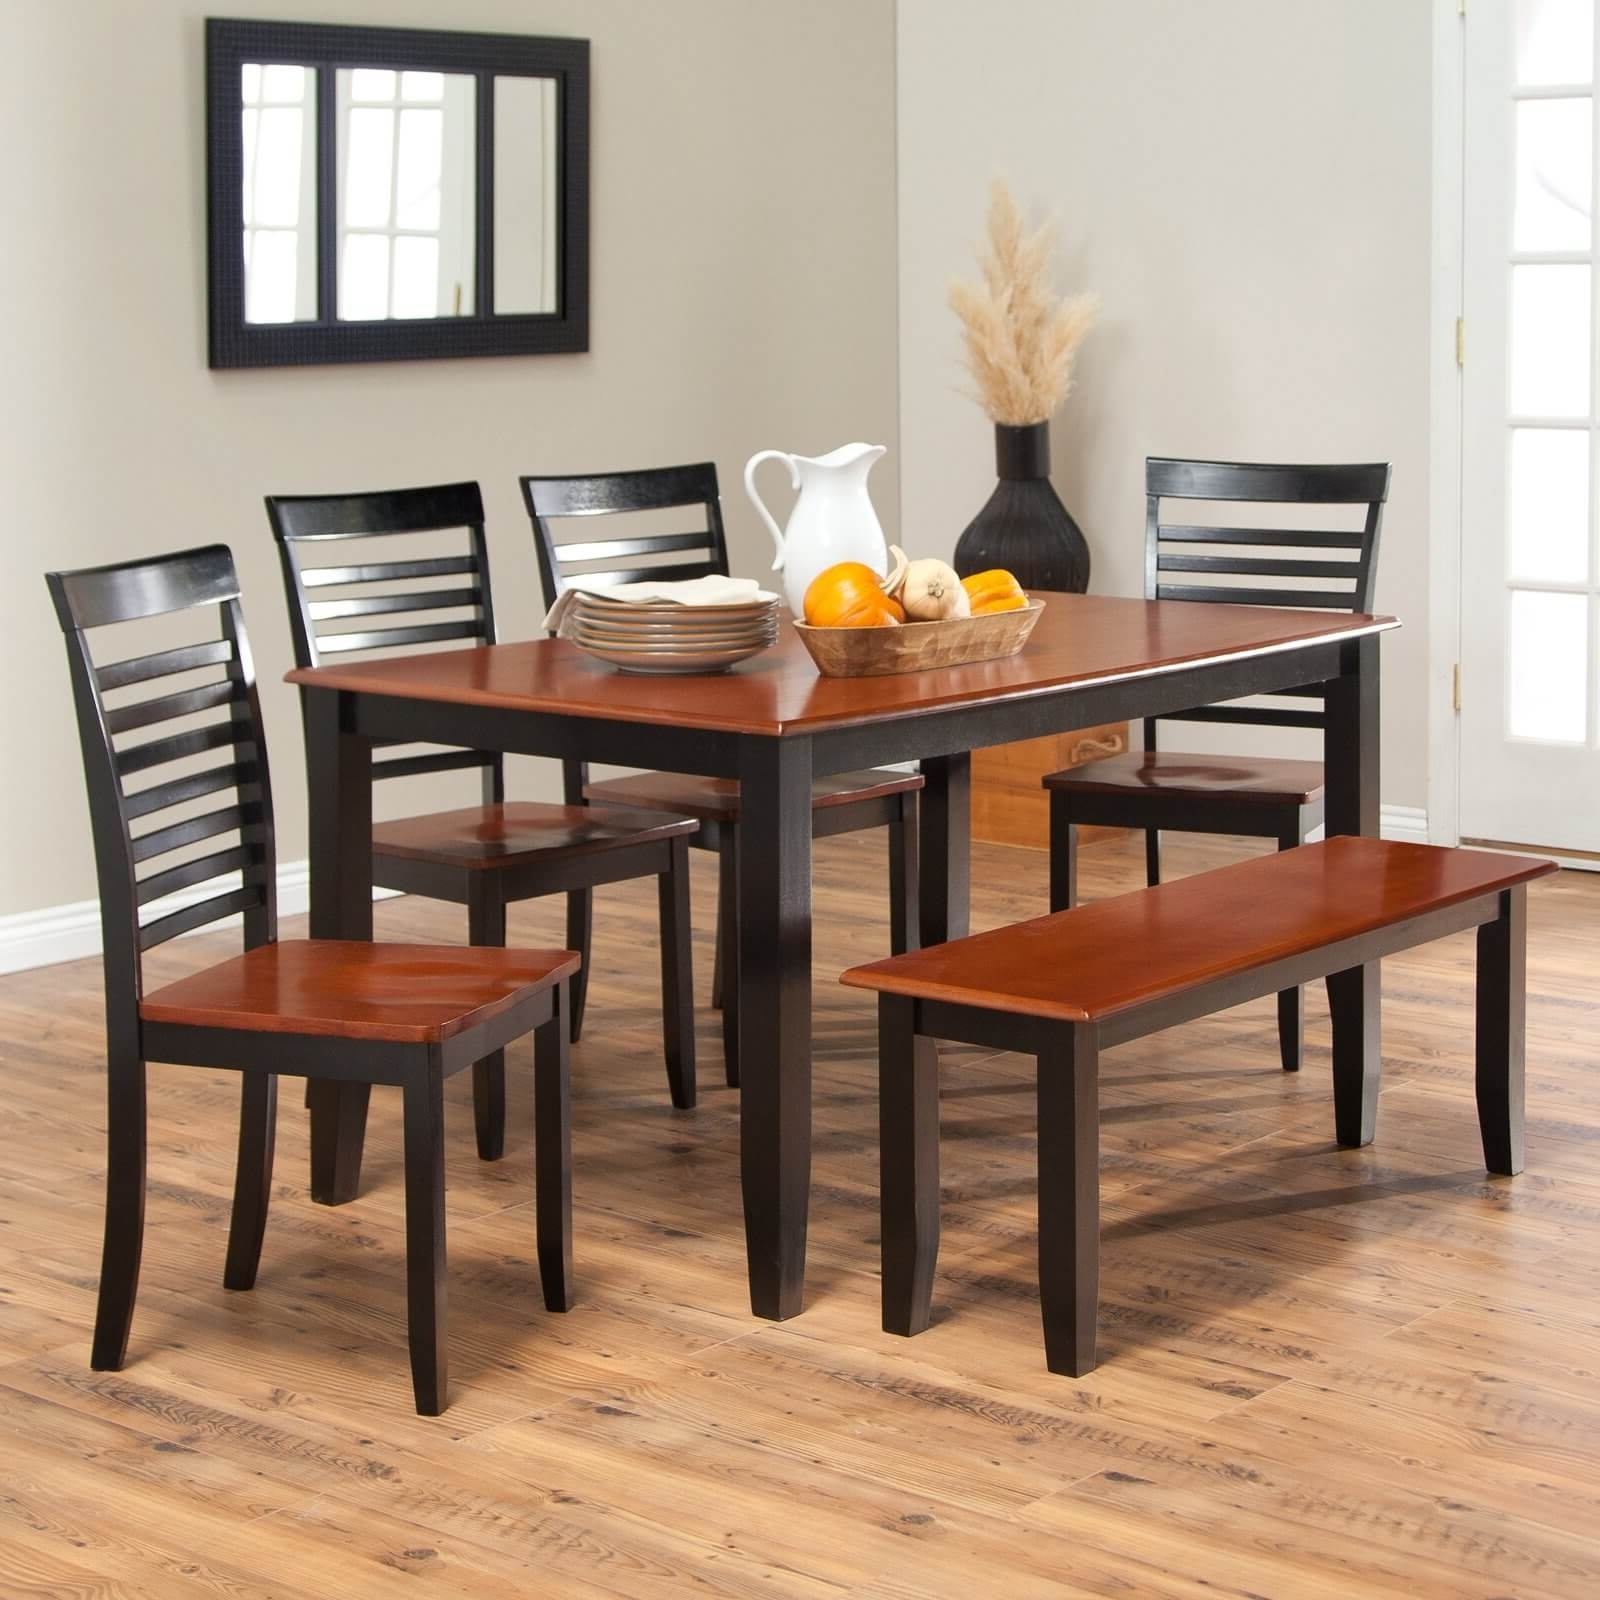 Most Popular 26 Dining Room Sets (Big And Small) With Bench Seating (2018) In Dark Solid Wood Dining Tables (View 22 of 25)